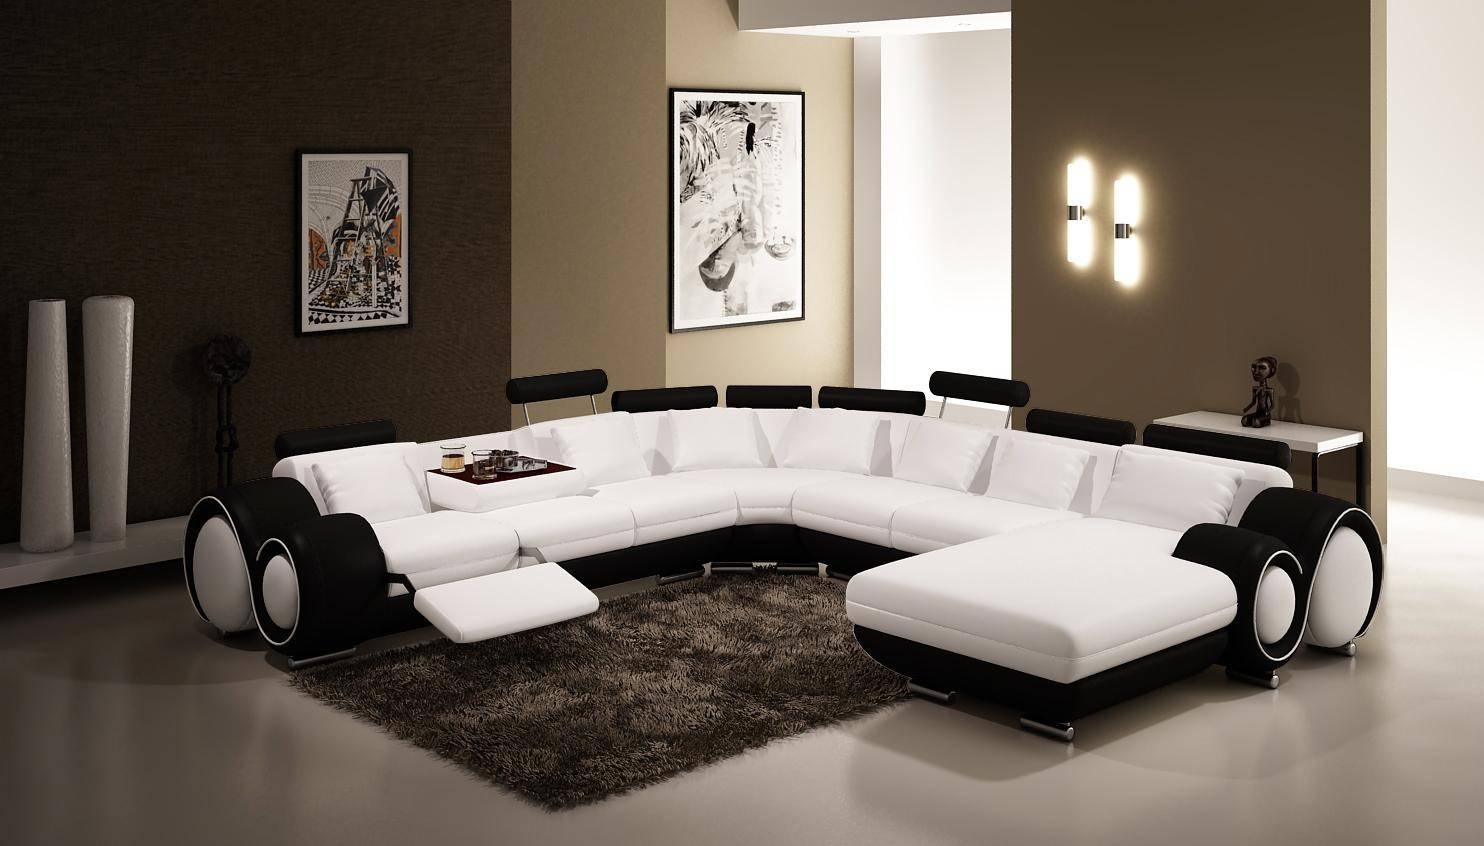 Vig Furniture 4084 Contemporary Black And White Leather Sectional Sofa Intended For Black And White Sectional Sofa (View 2 of 30)